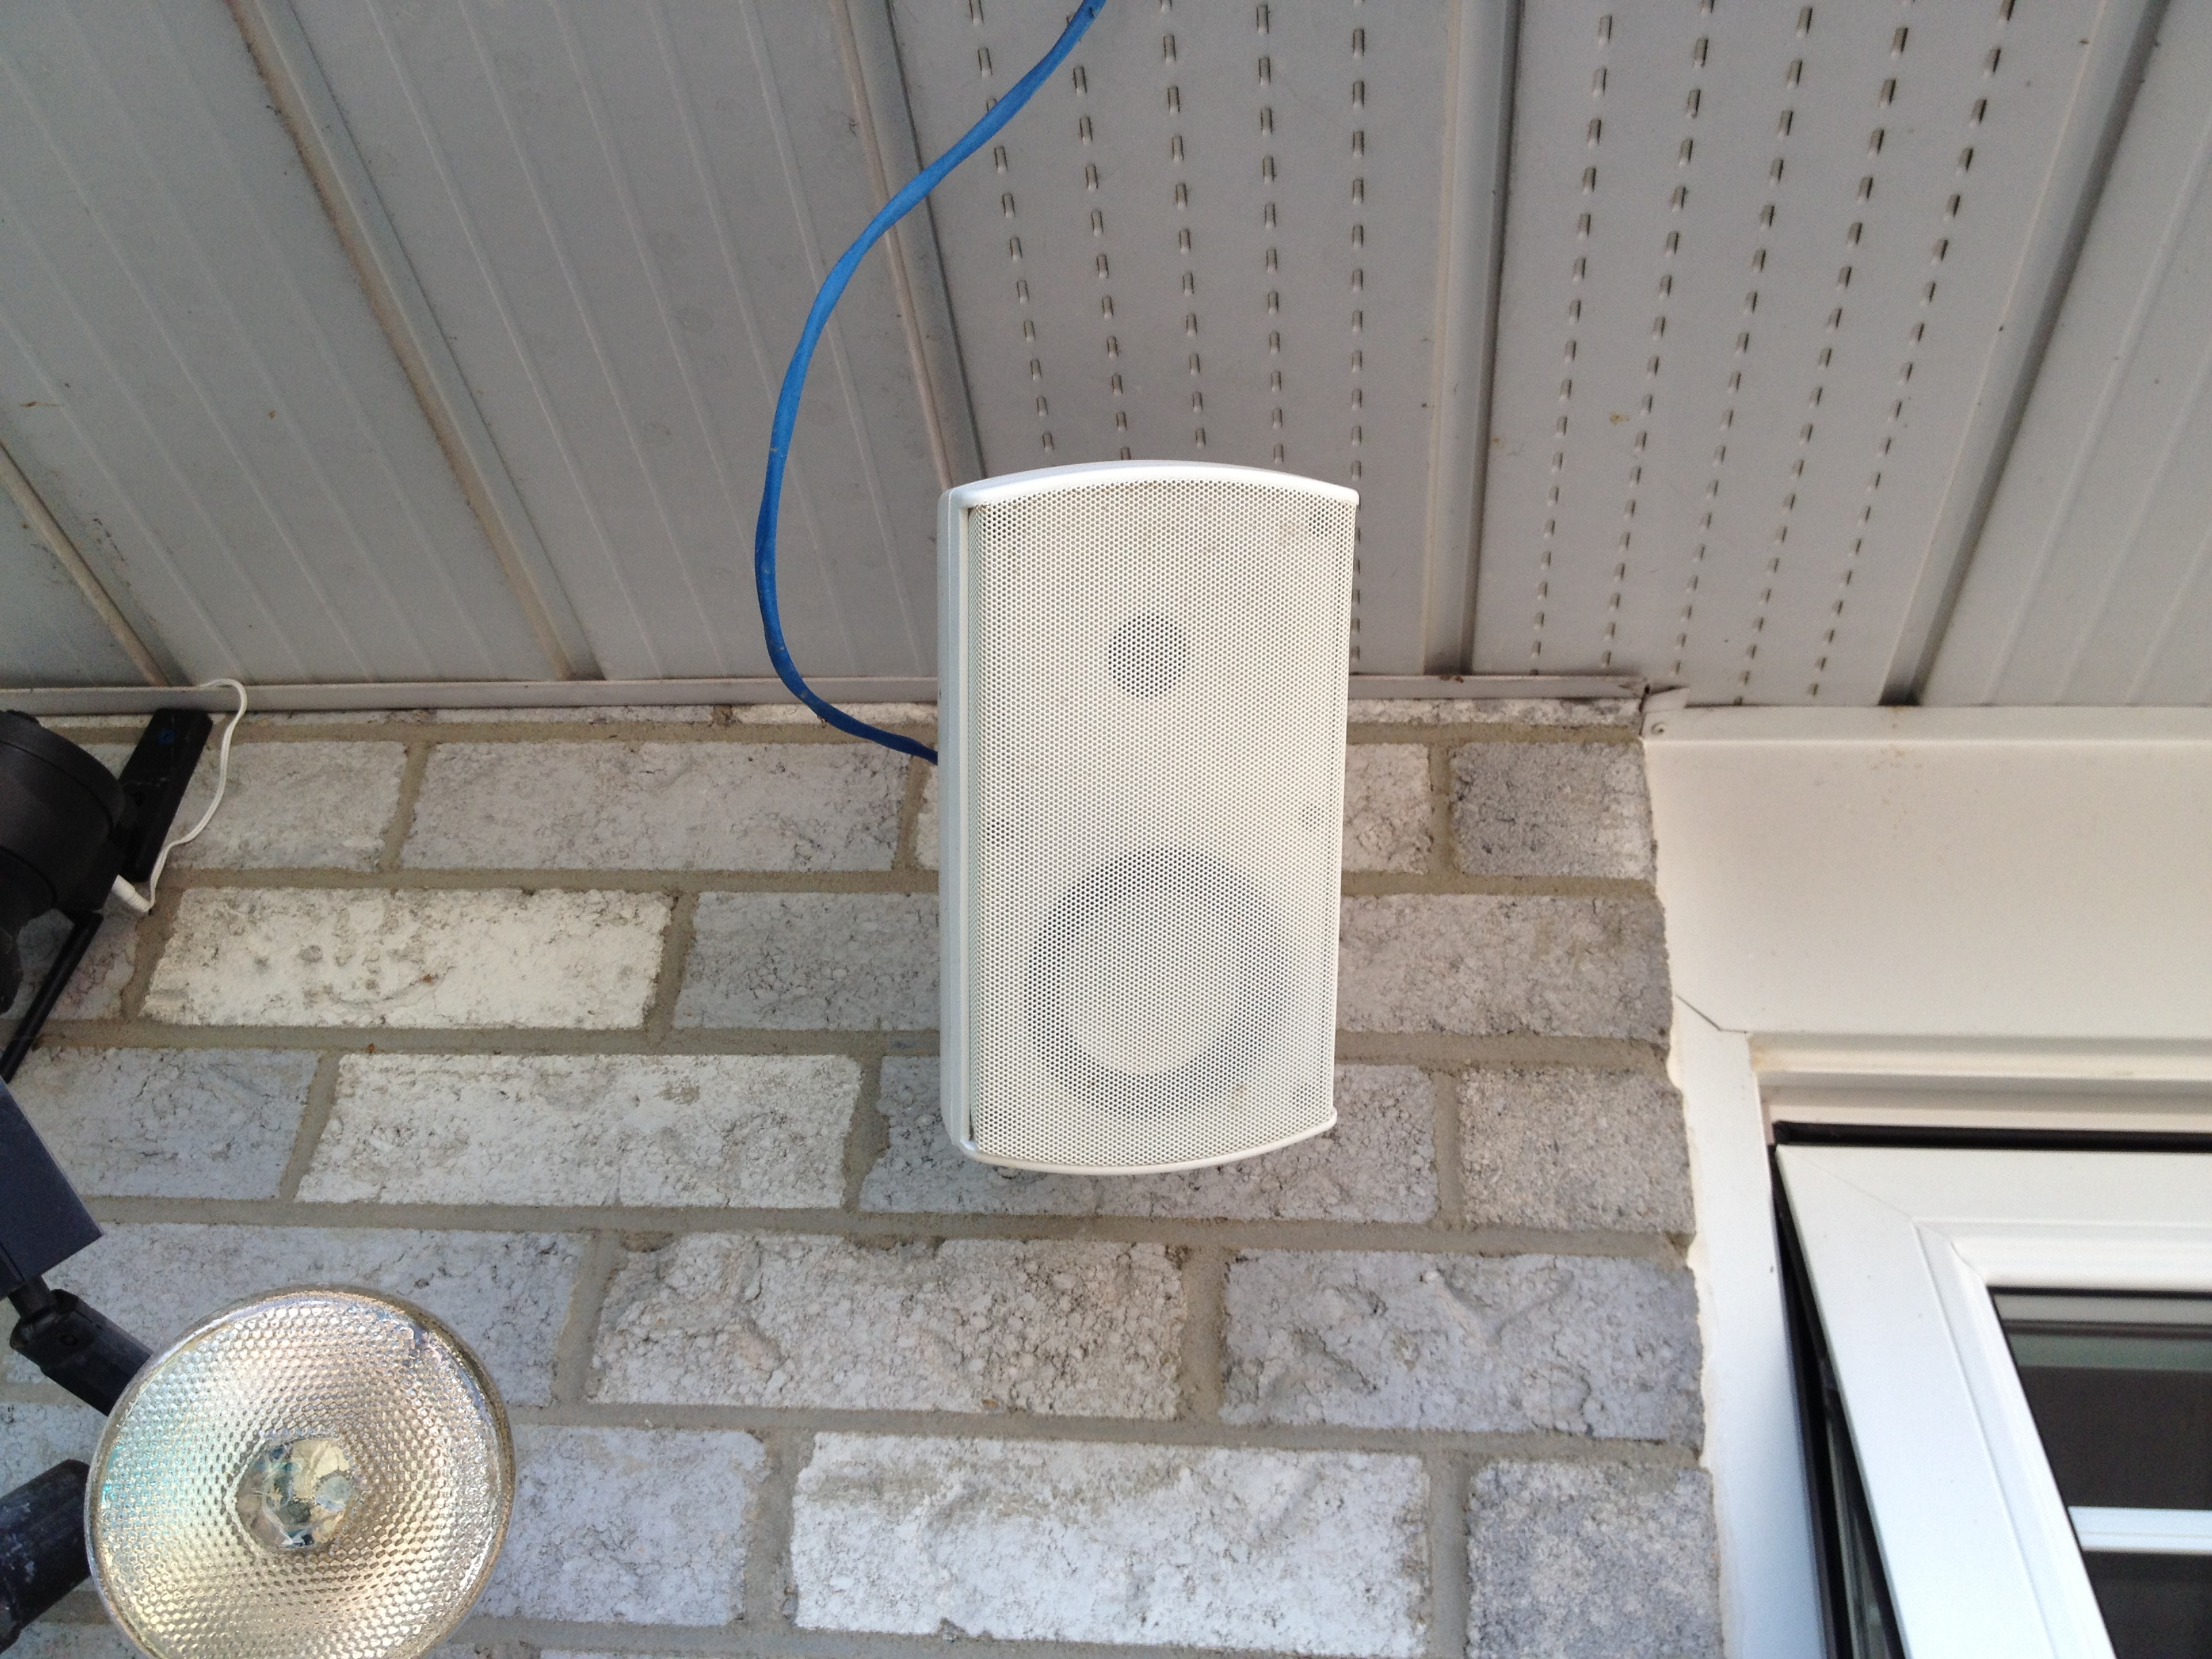 Airplay Ikea Butchers Block Hack Wiring Outdoor Speakers To Receiver I Cut The Conduit Ran Speaker Wires And My Ip Camera Through It Attached Pergola